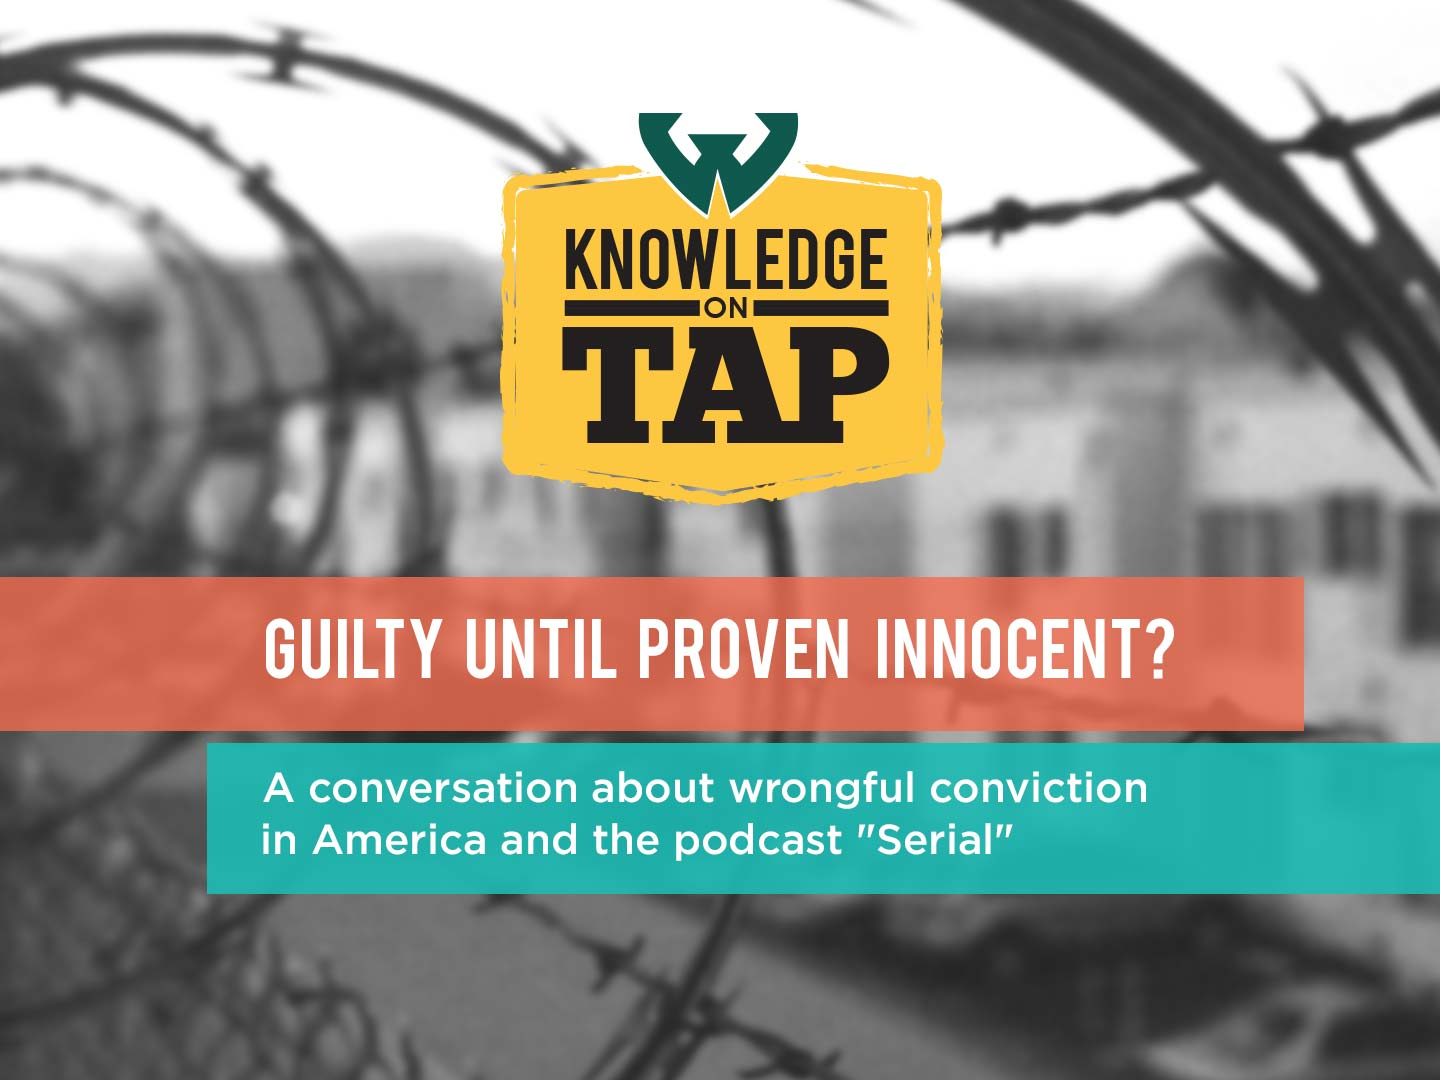 Prof. Marvin Zalman explores wrongful conviction in America and discusses podcast